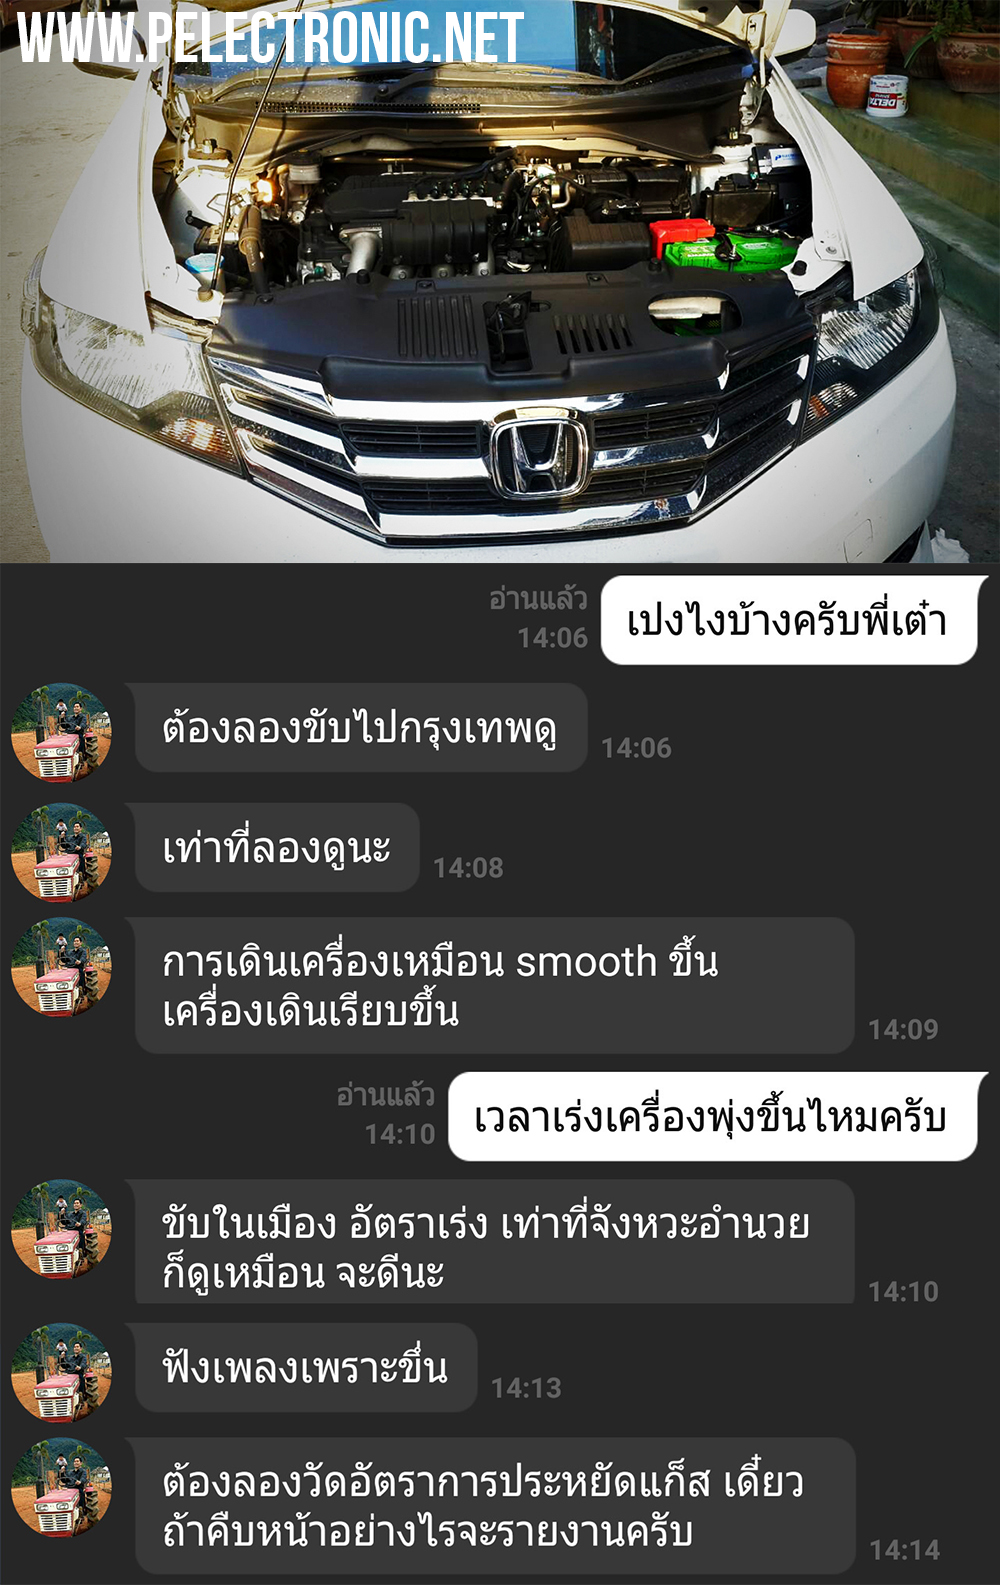 กรองไฟ P Electronic Honda City 4-1